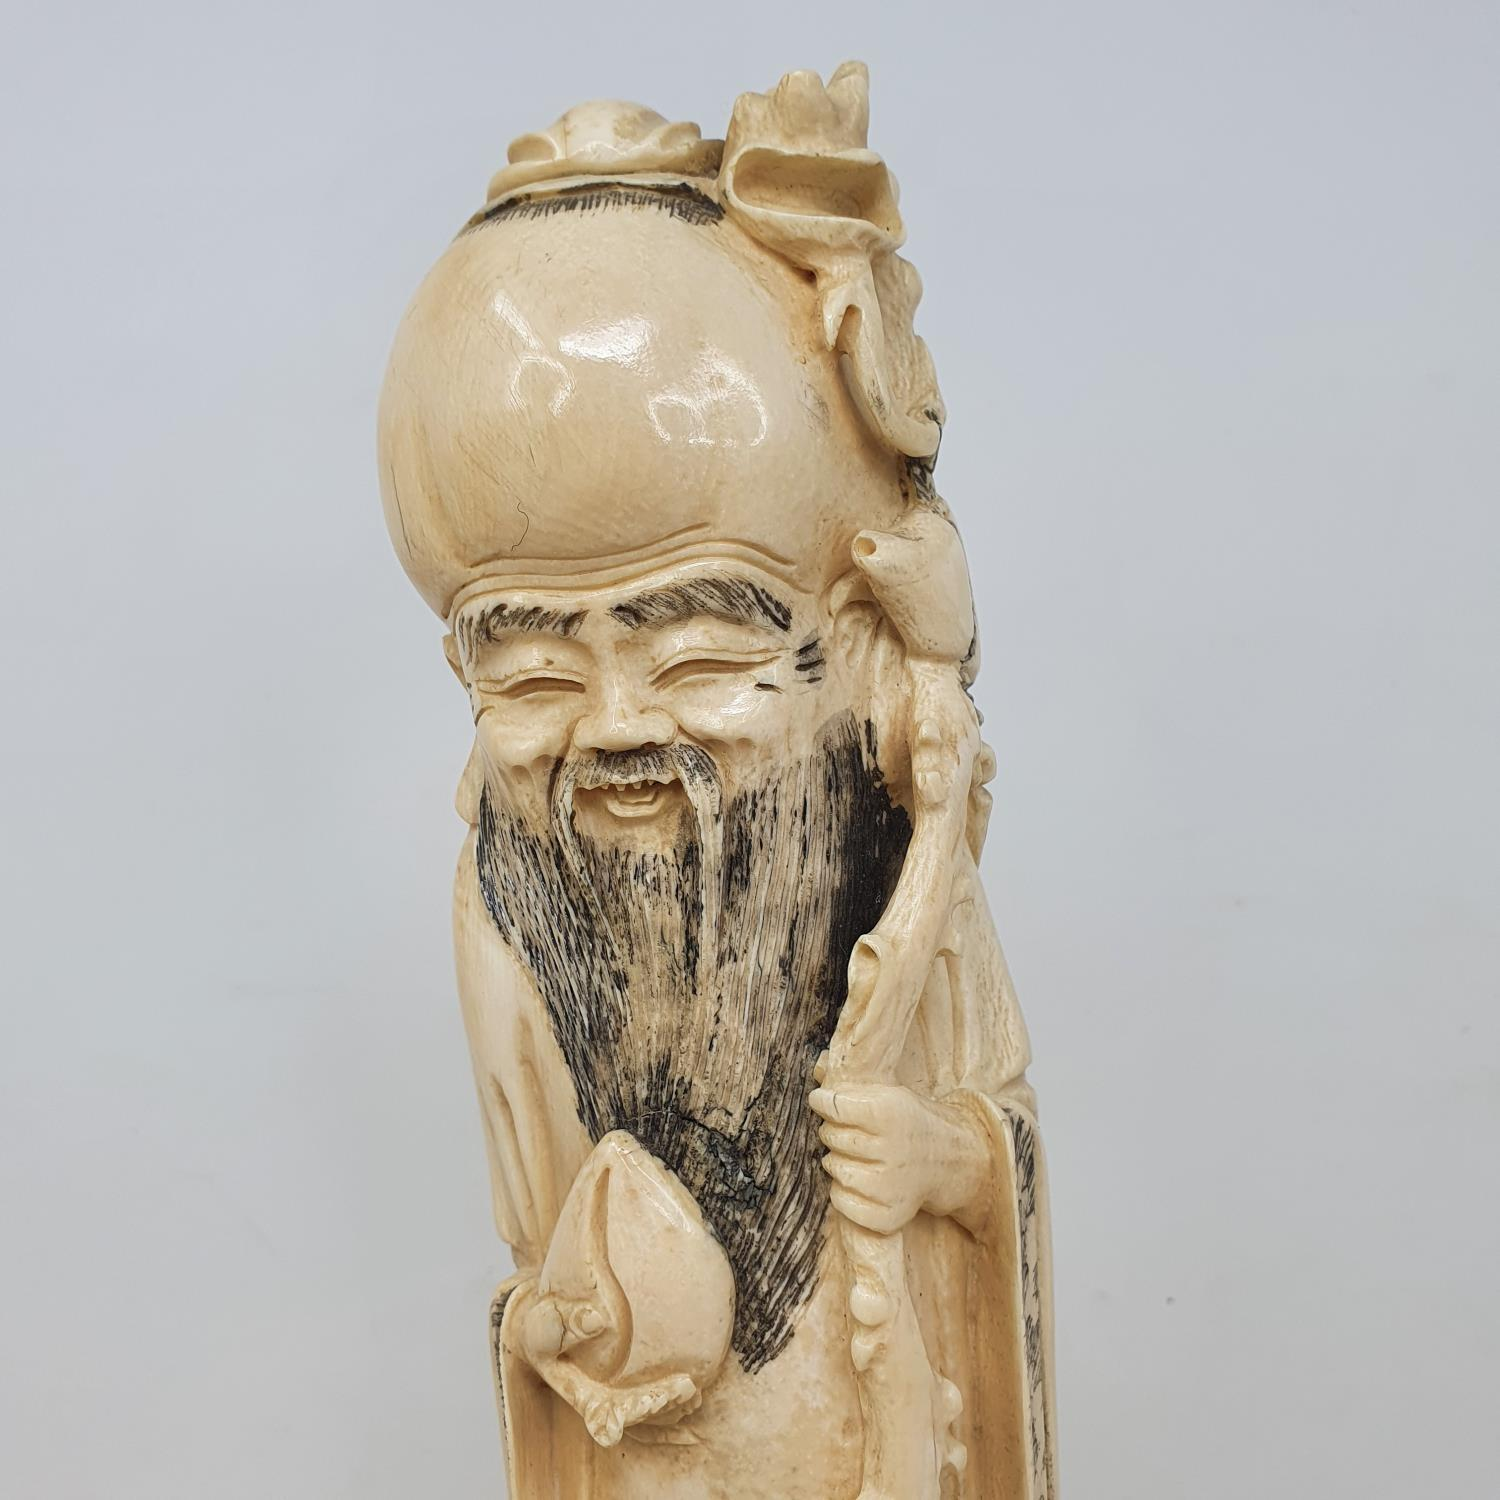 An early 20th century Chinese ivory tusk, carved in the form of Shou Lao, on wooden base, 38 cm - Image 2 of 3